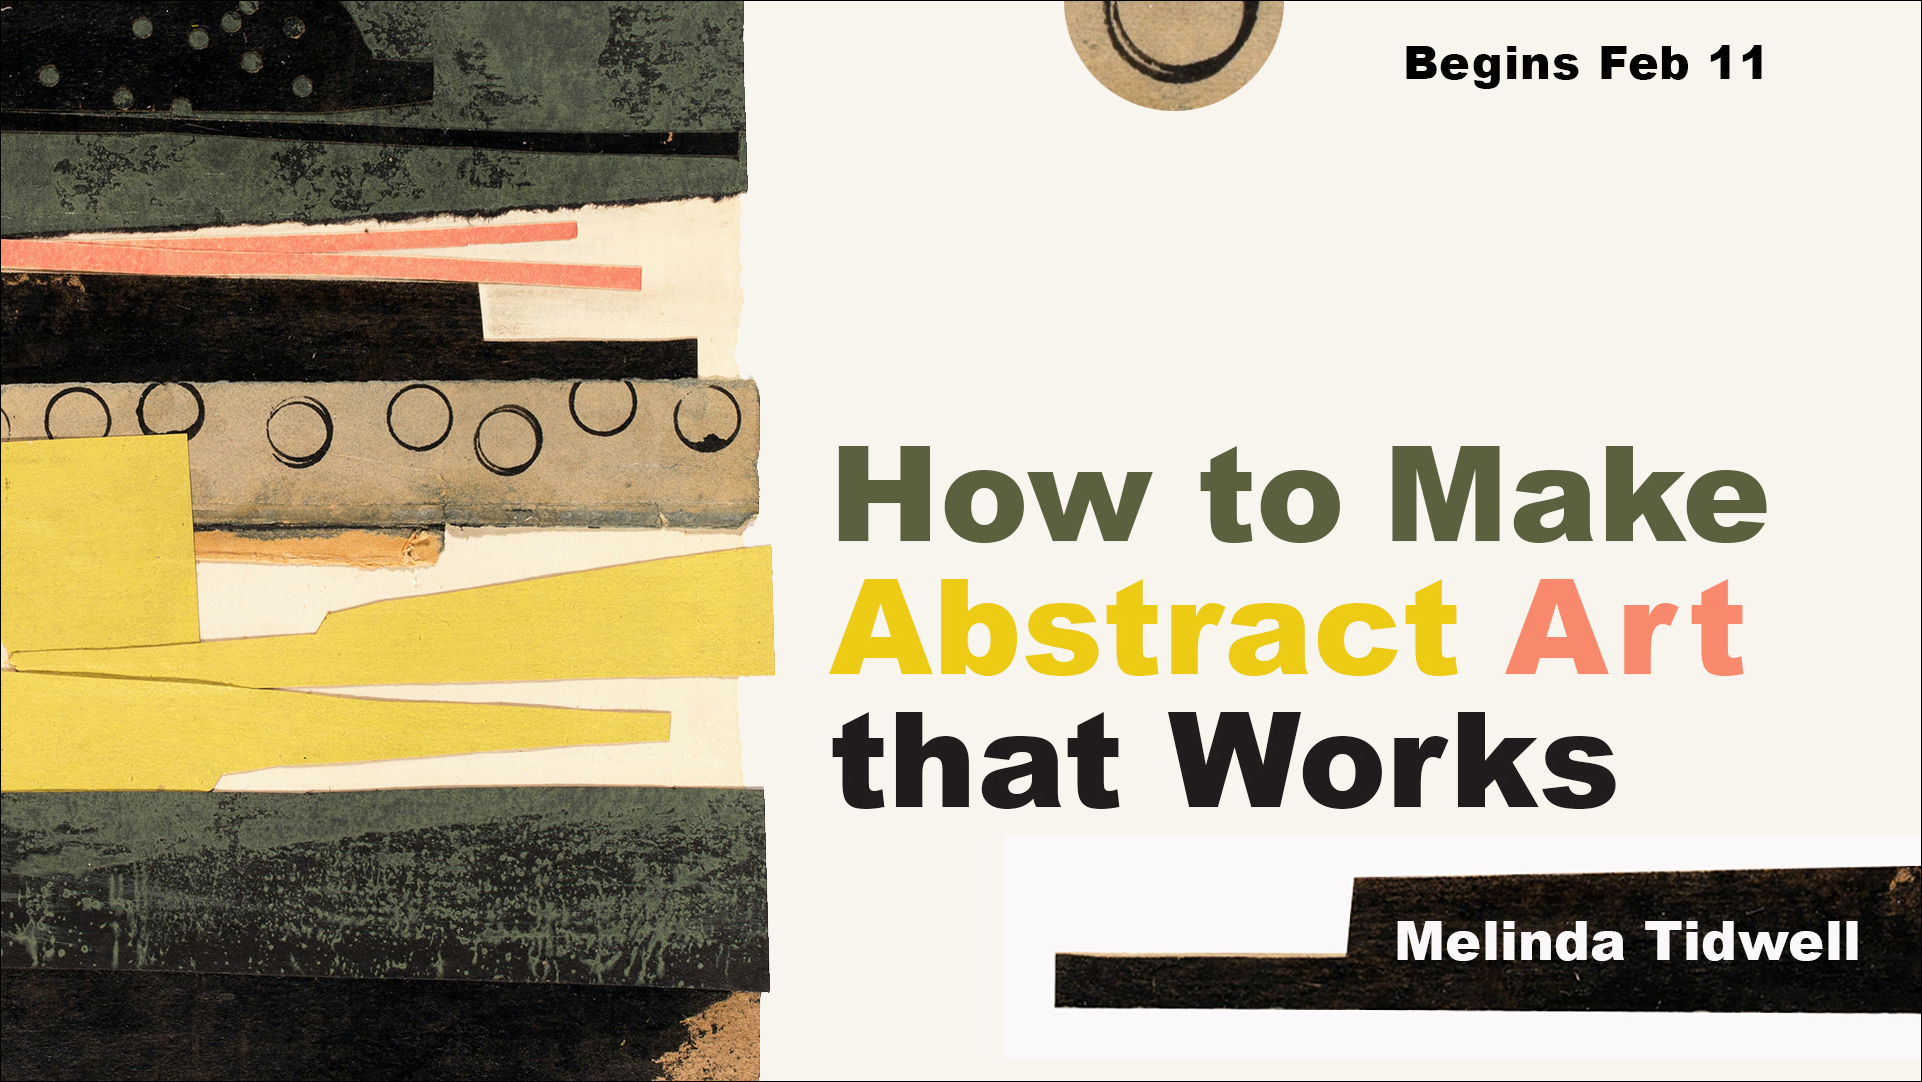 https://www.carlasonheim.com/online-classes/how-to-make-abstract-art-that-works/